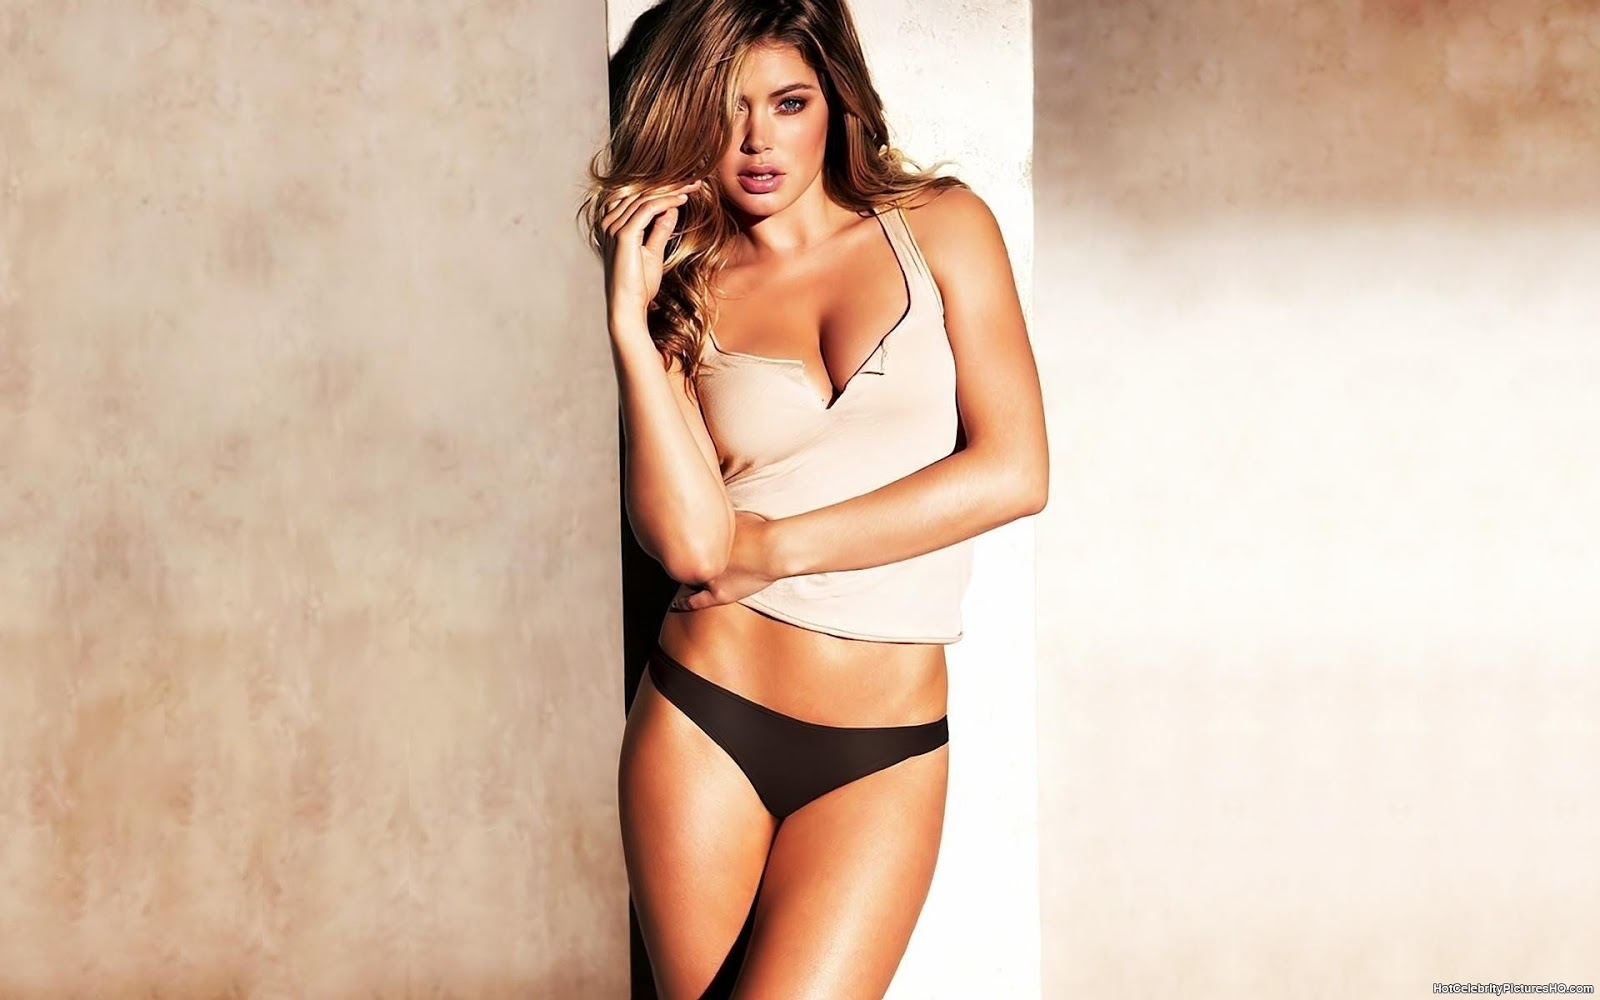 Doutzen Kroes Hot Hd Wallpapers 2012-2013  All About Hd -9220